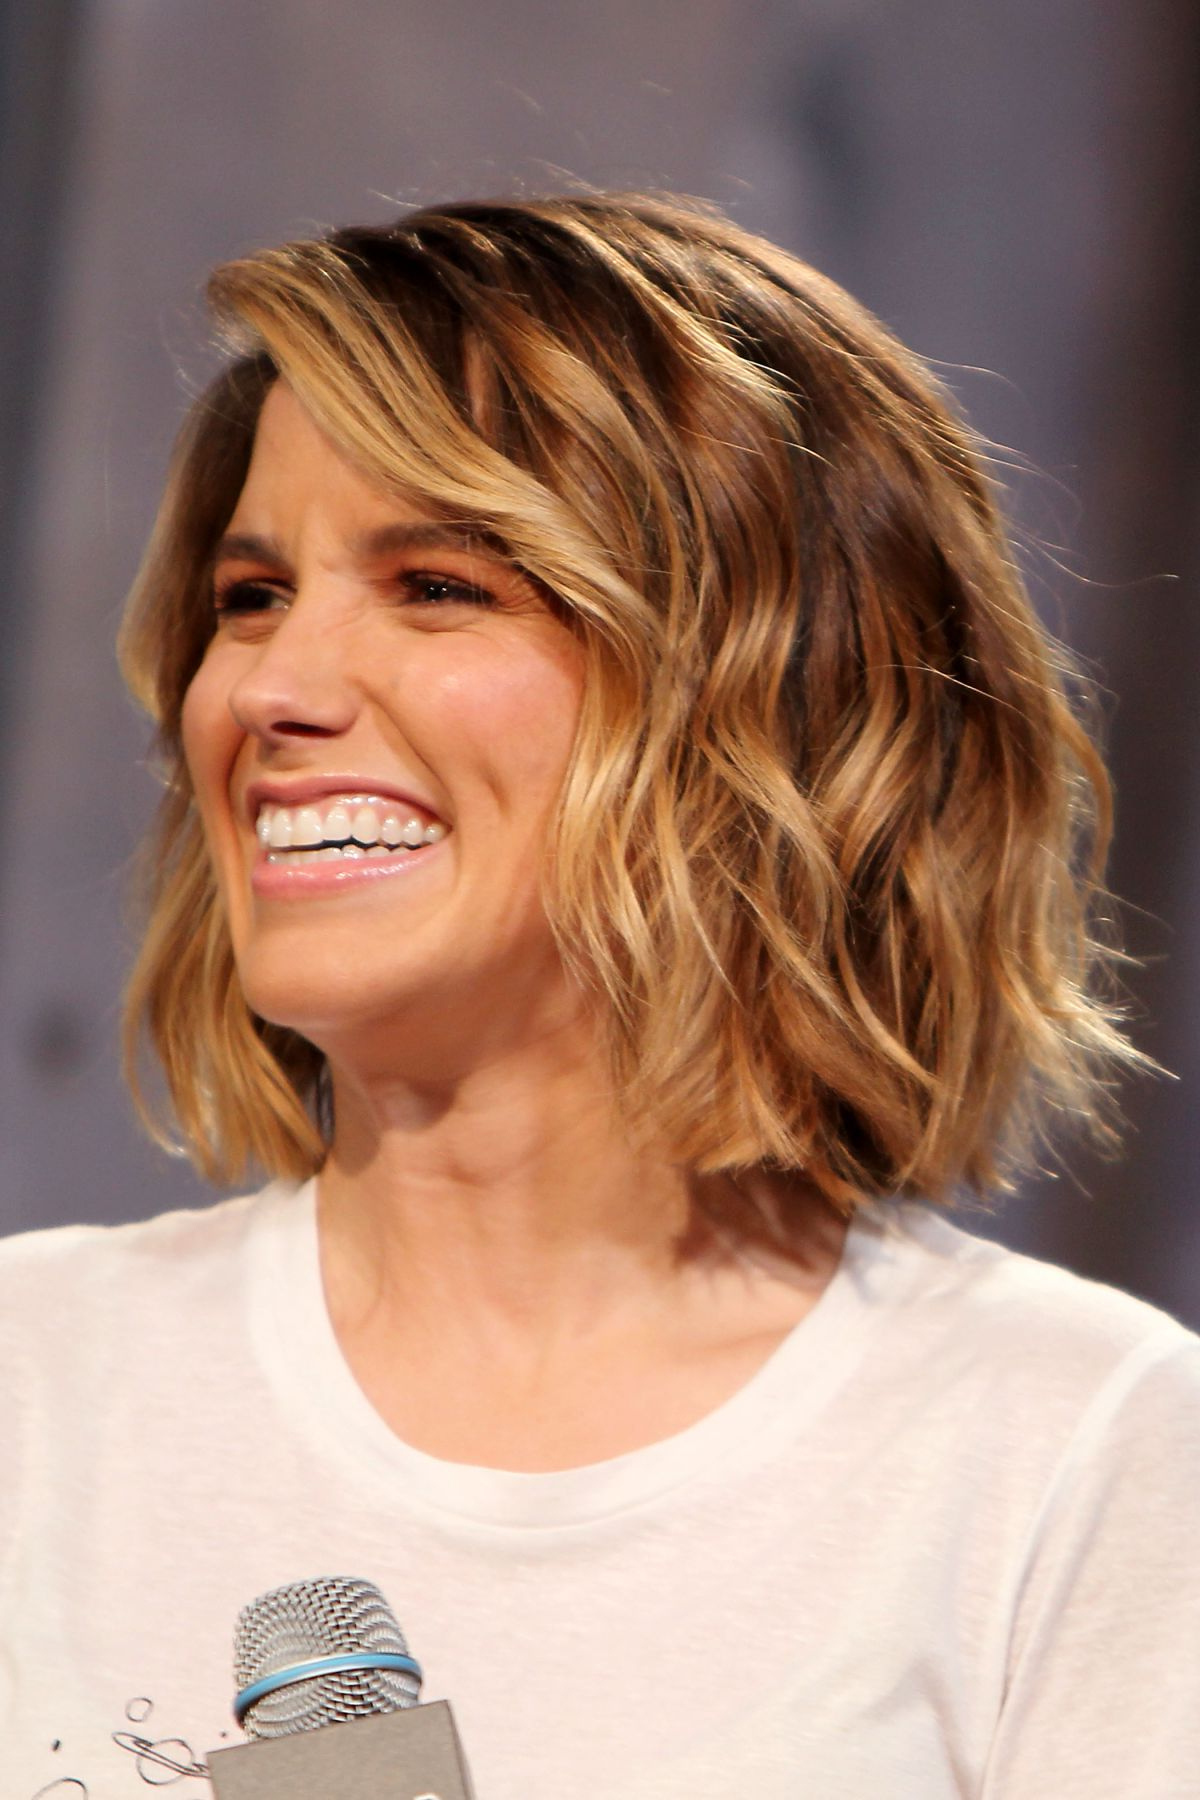 Sophia Bush At Aol Build Presetns Chicago P.d (View 23 of 25)